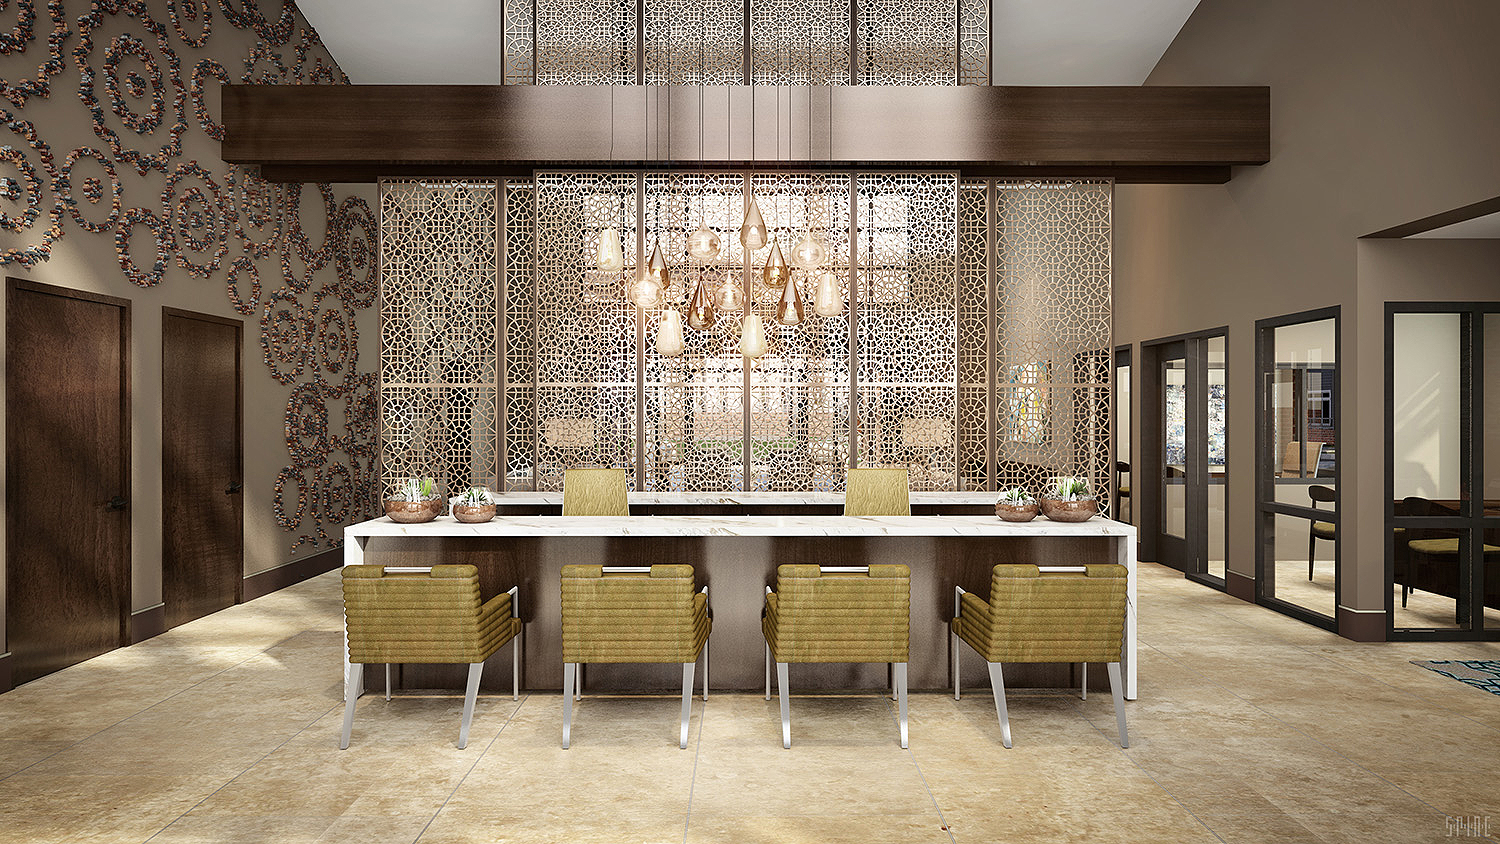 Interior of modern shared dining area